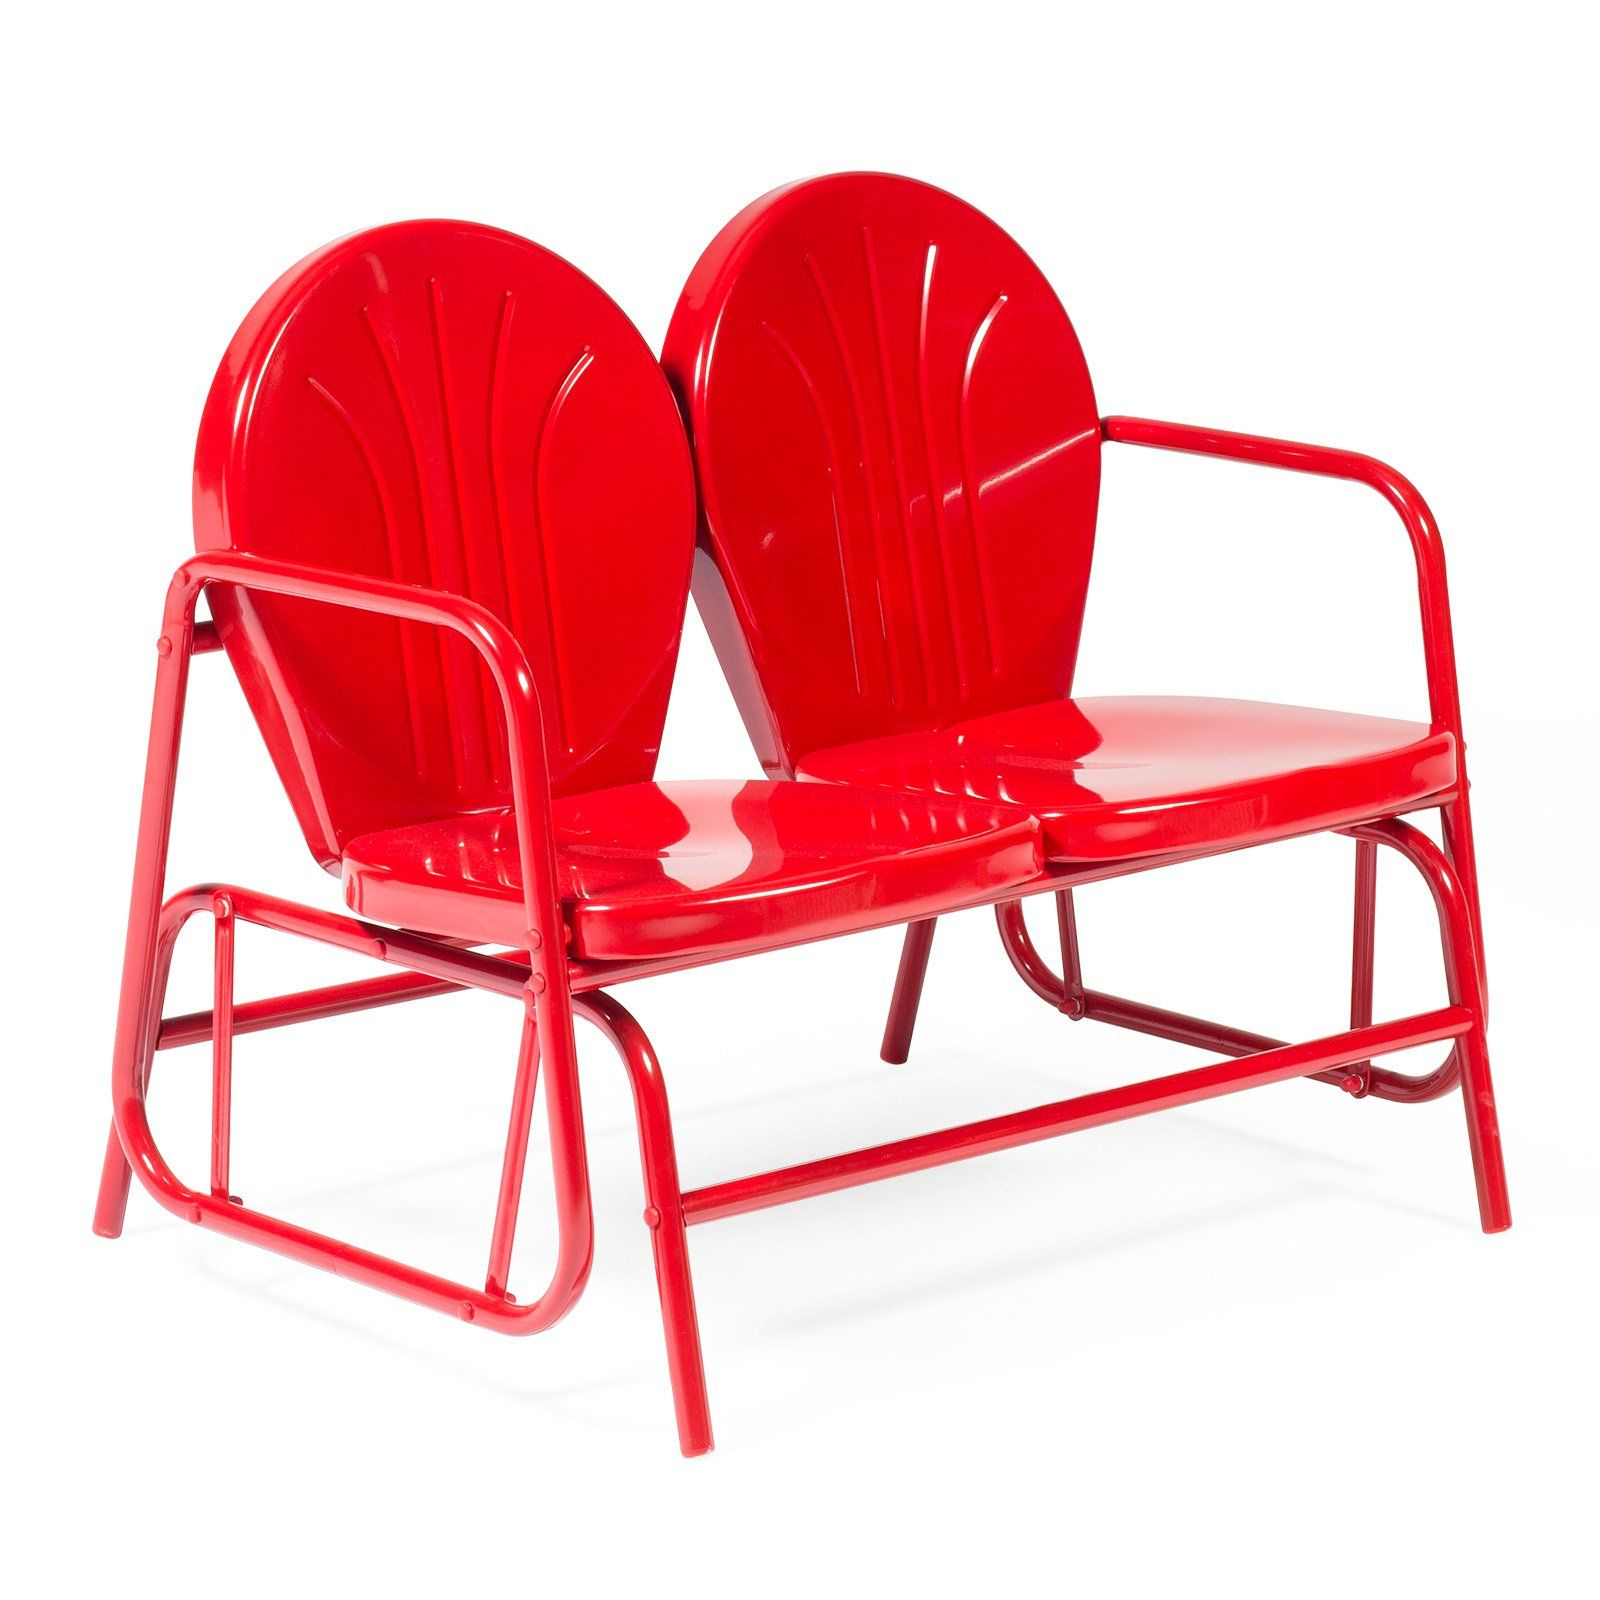 Featured Image of Outdoor Retro Metal Double Glider Benches